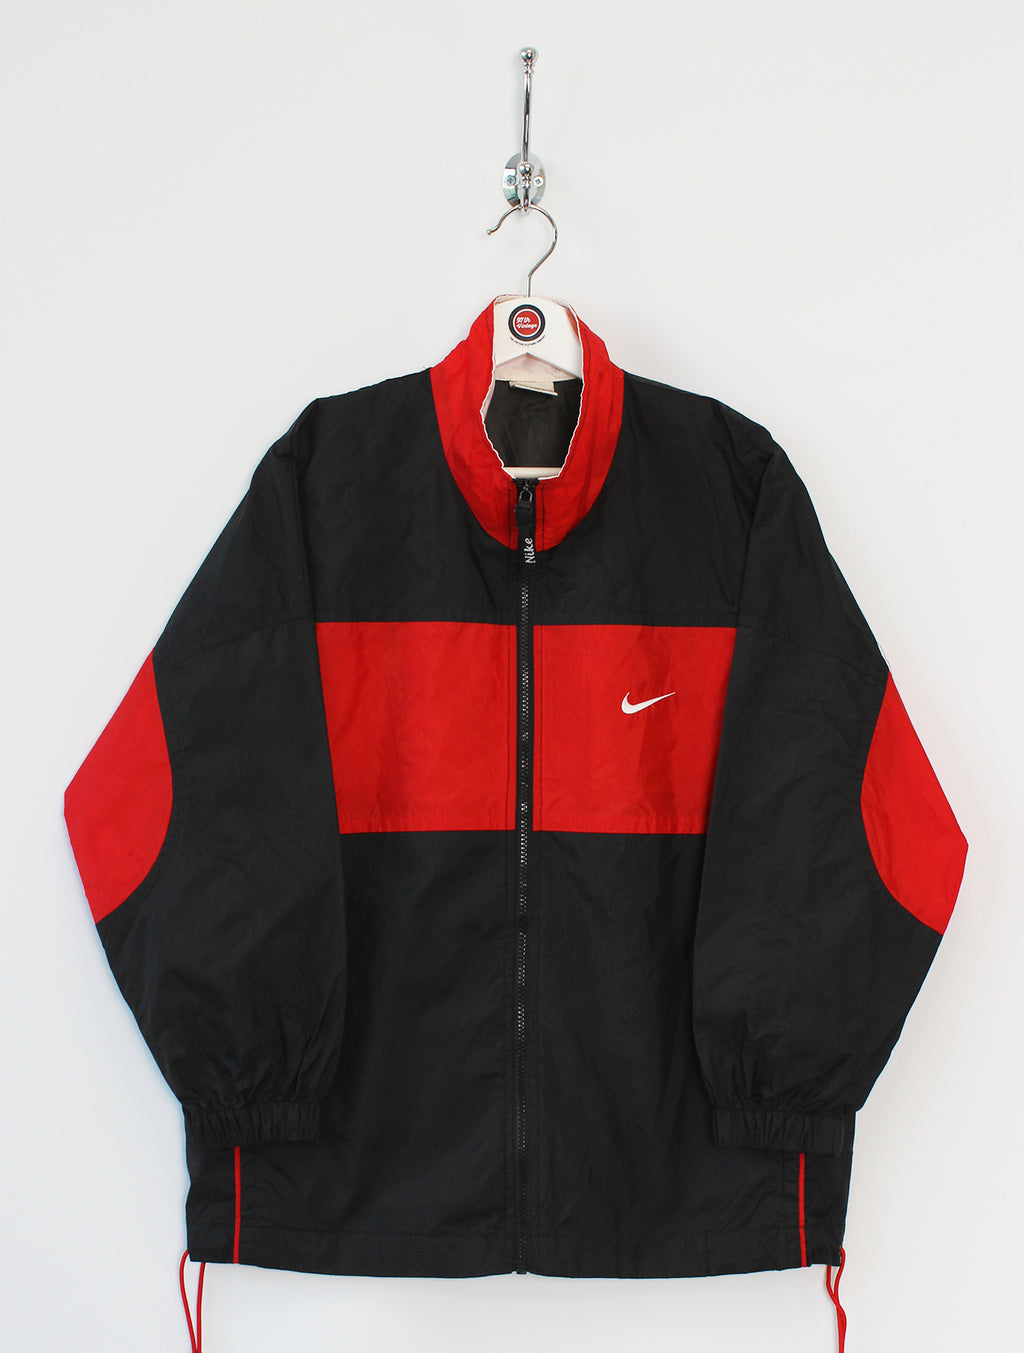 Nike Shell Suit Jacket (L)